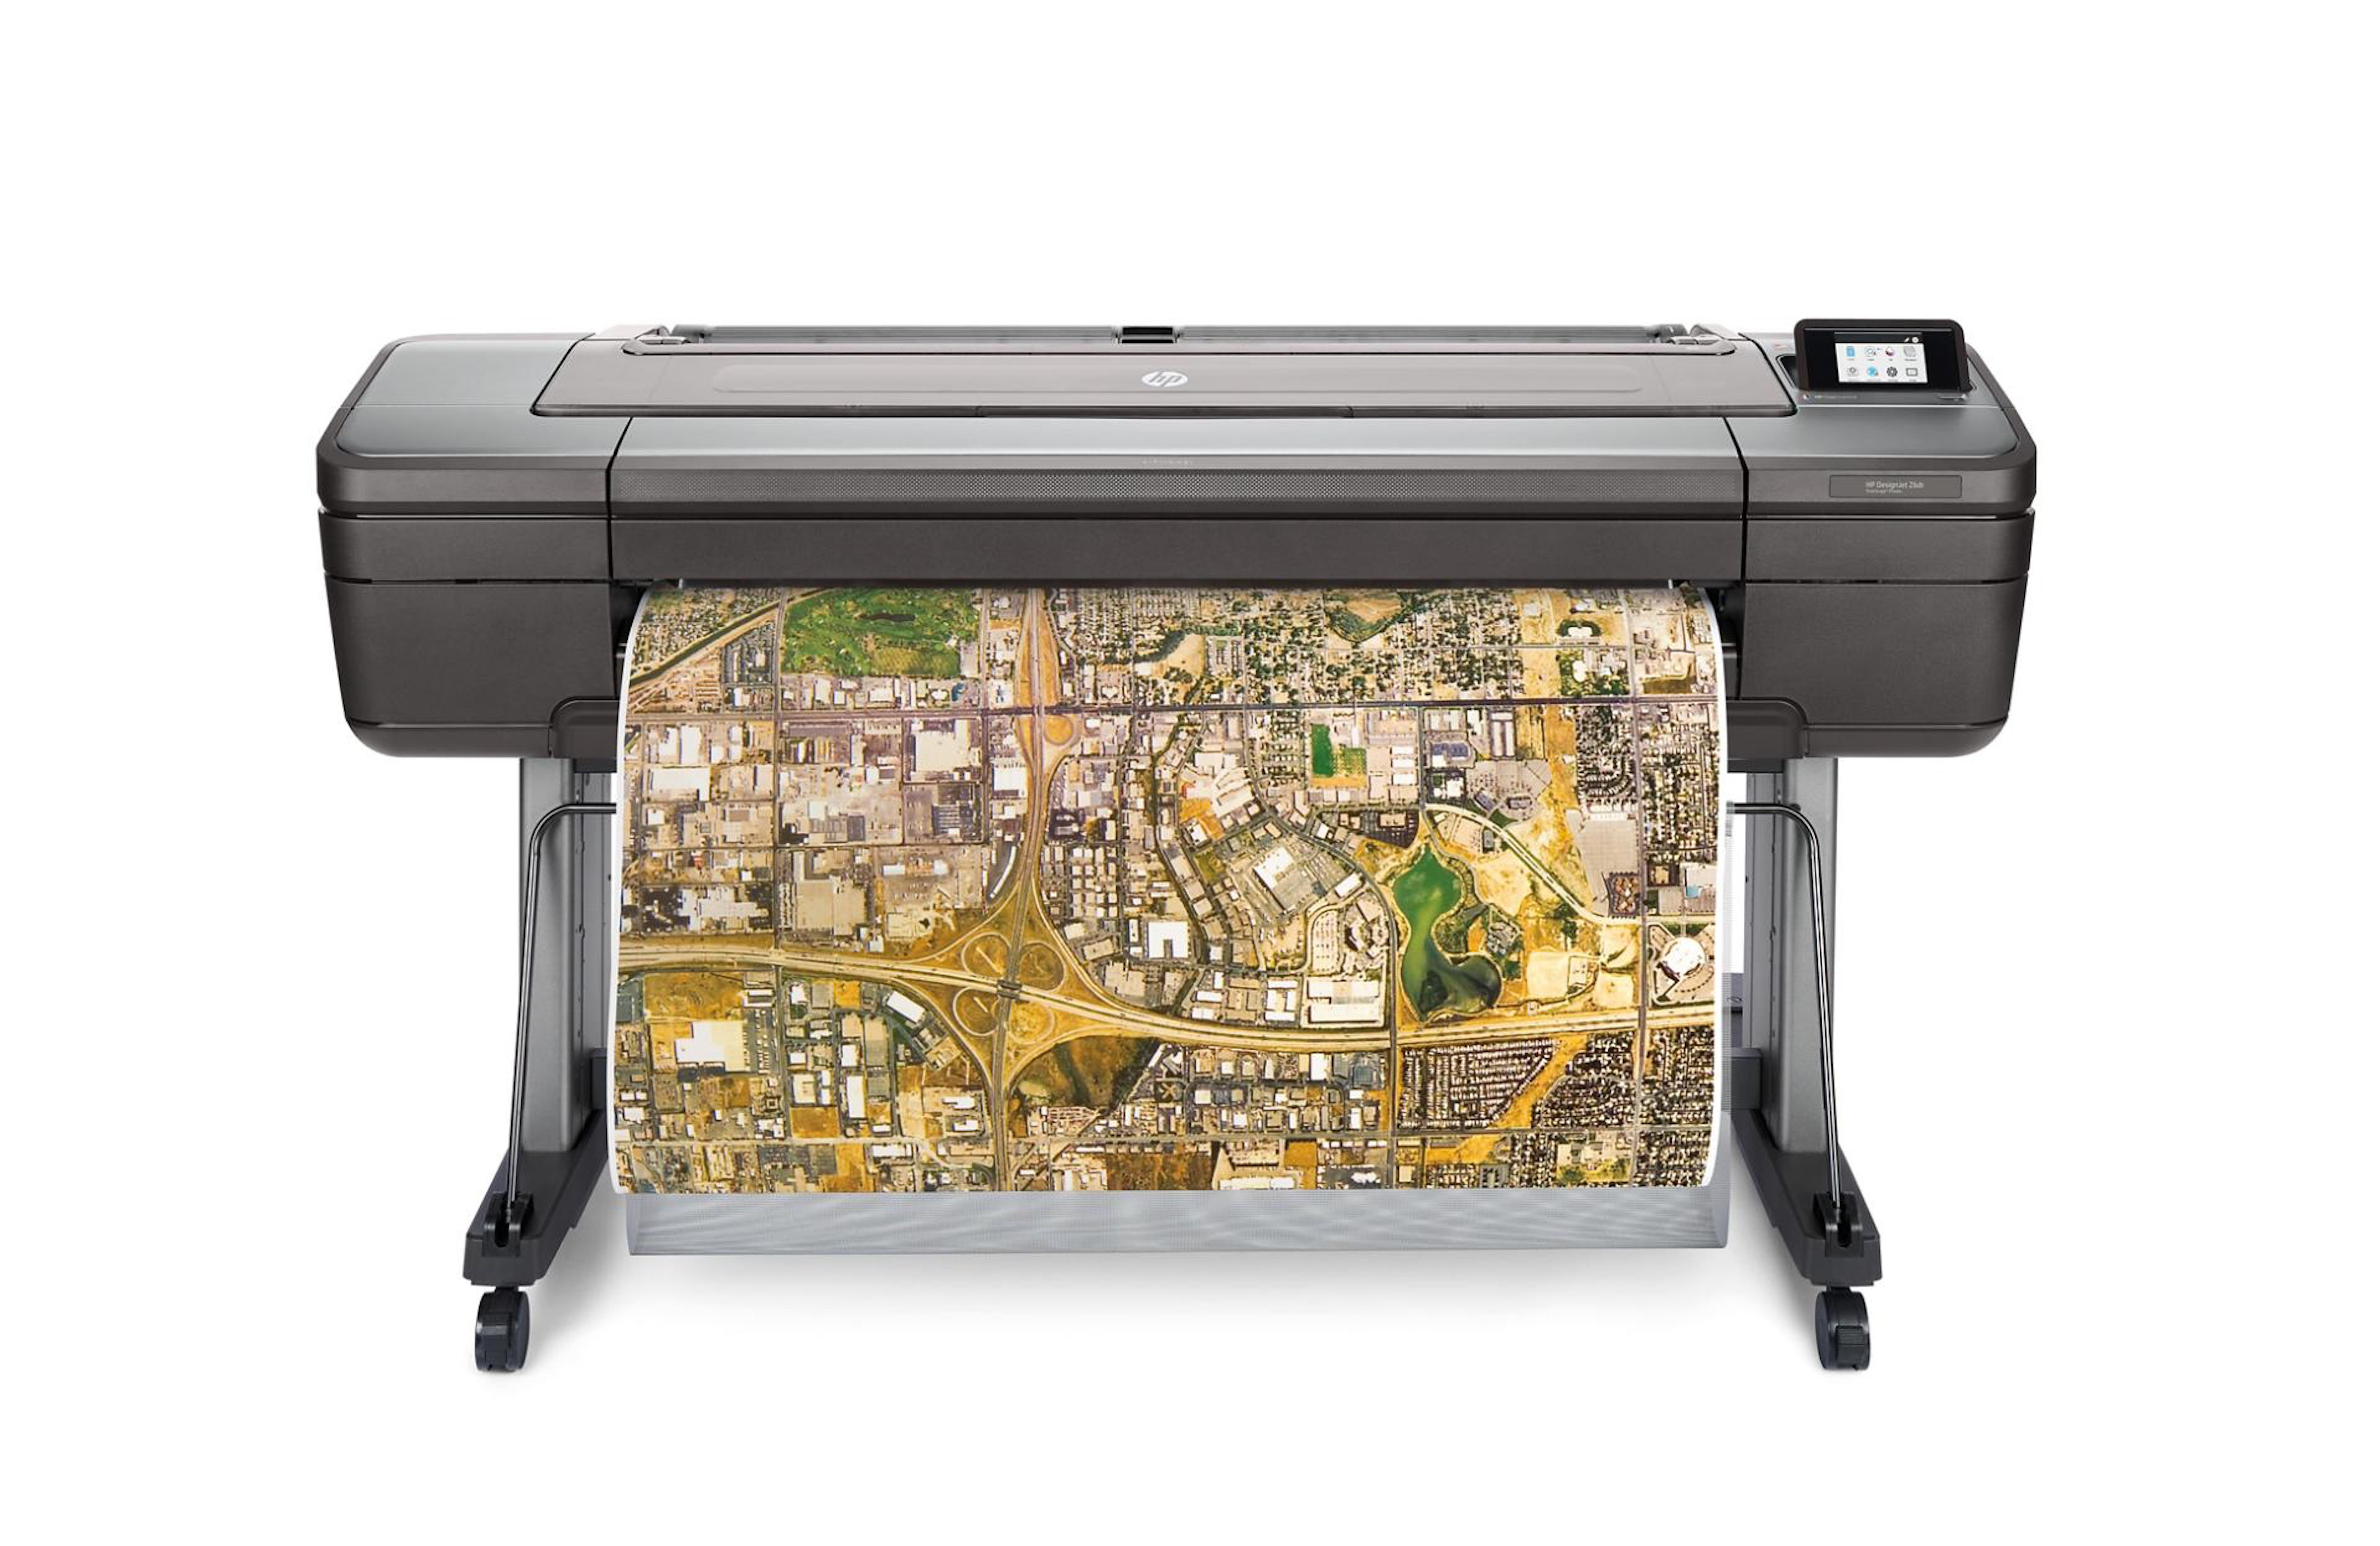 Fig. 1: HP DesignJet Z6 printers are designed for GIS applications.